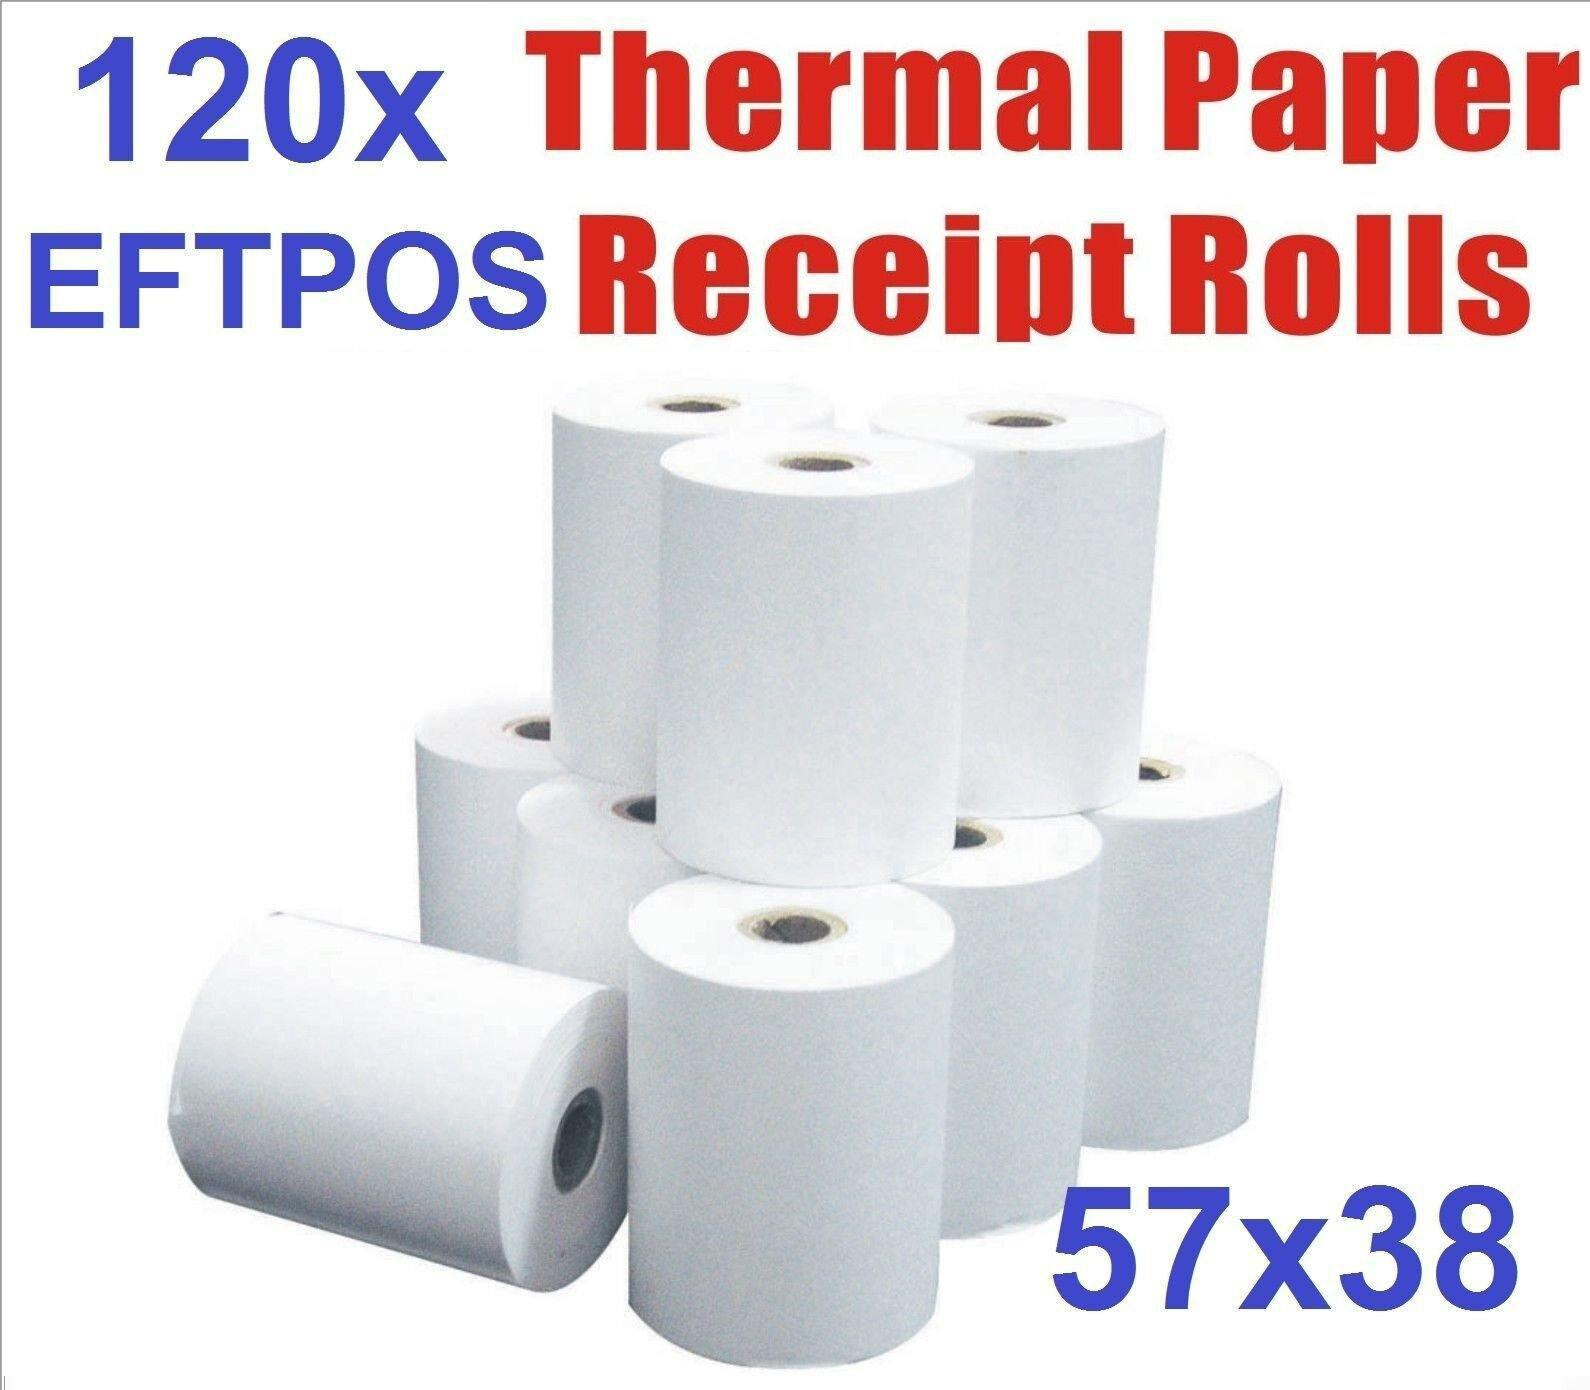 120 Bulk Rolls 57x38mm Premium EFTPOS Thermal Paper Cash Register Receipt Rolls